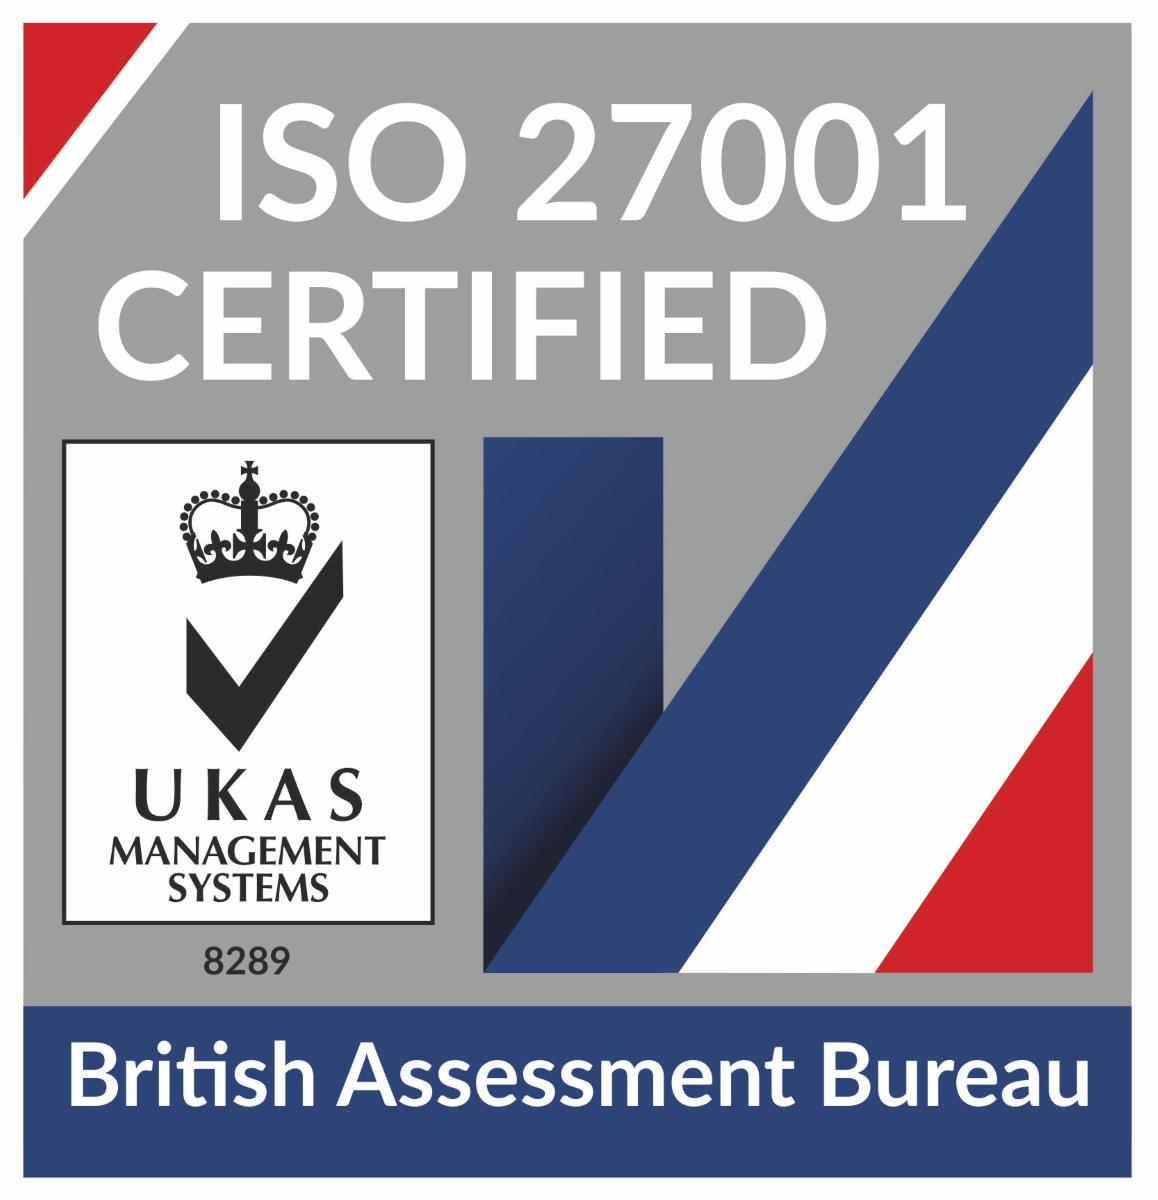 ISO 27001 Accrediation mark